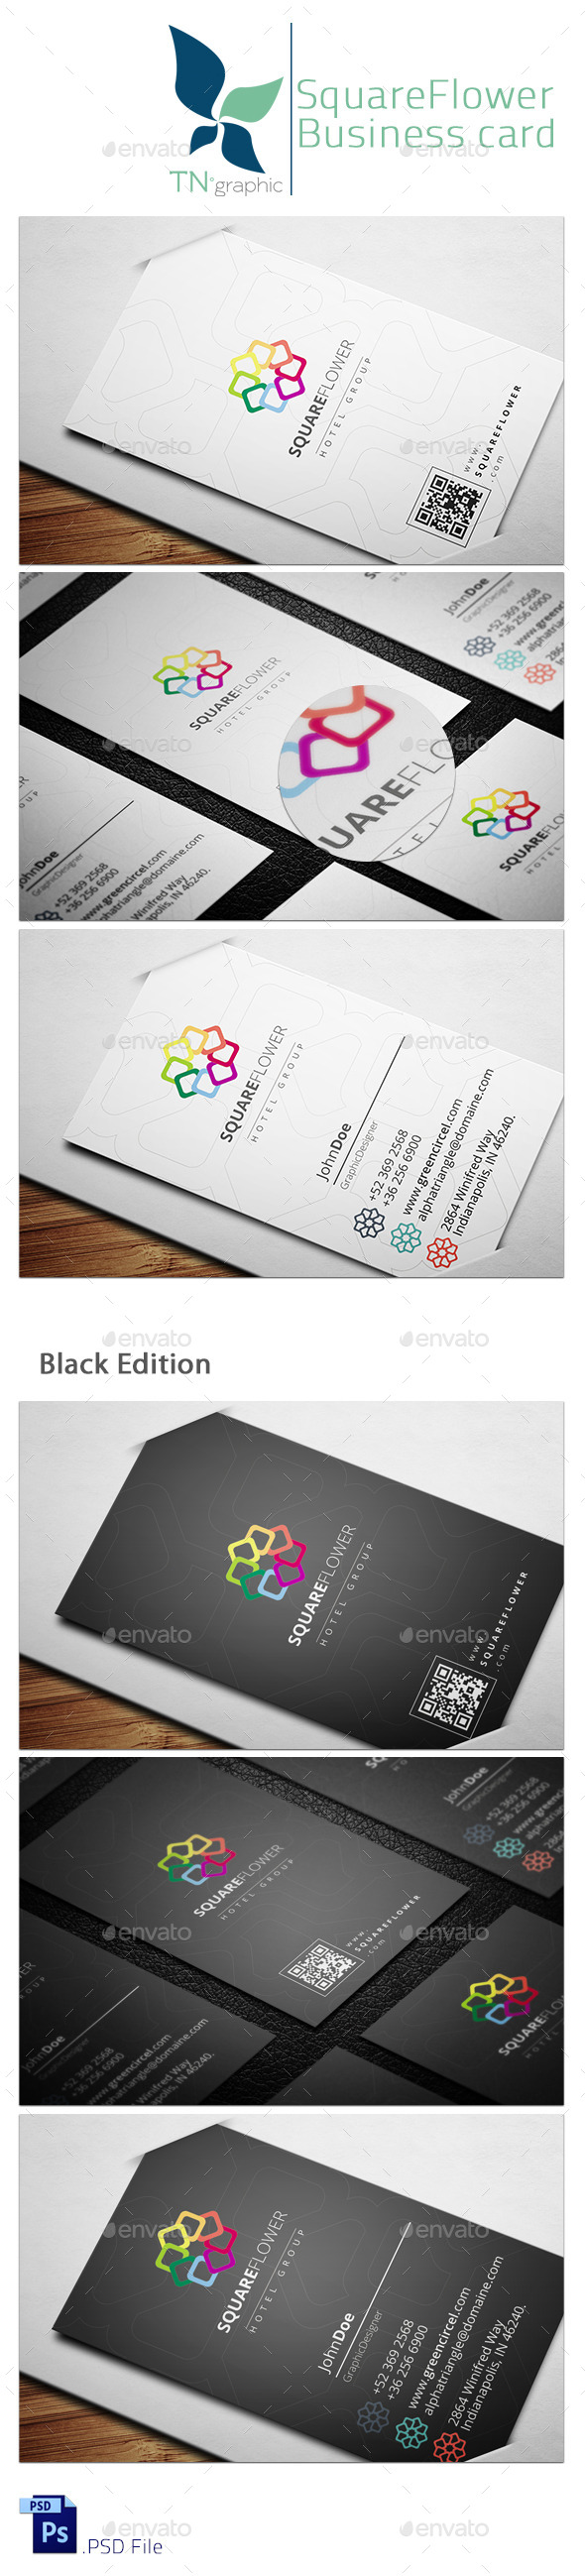 Creative business card templates designs from graphicriver page 59 reheart Image collections